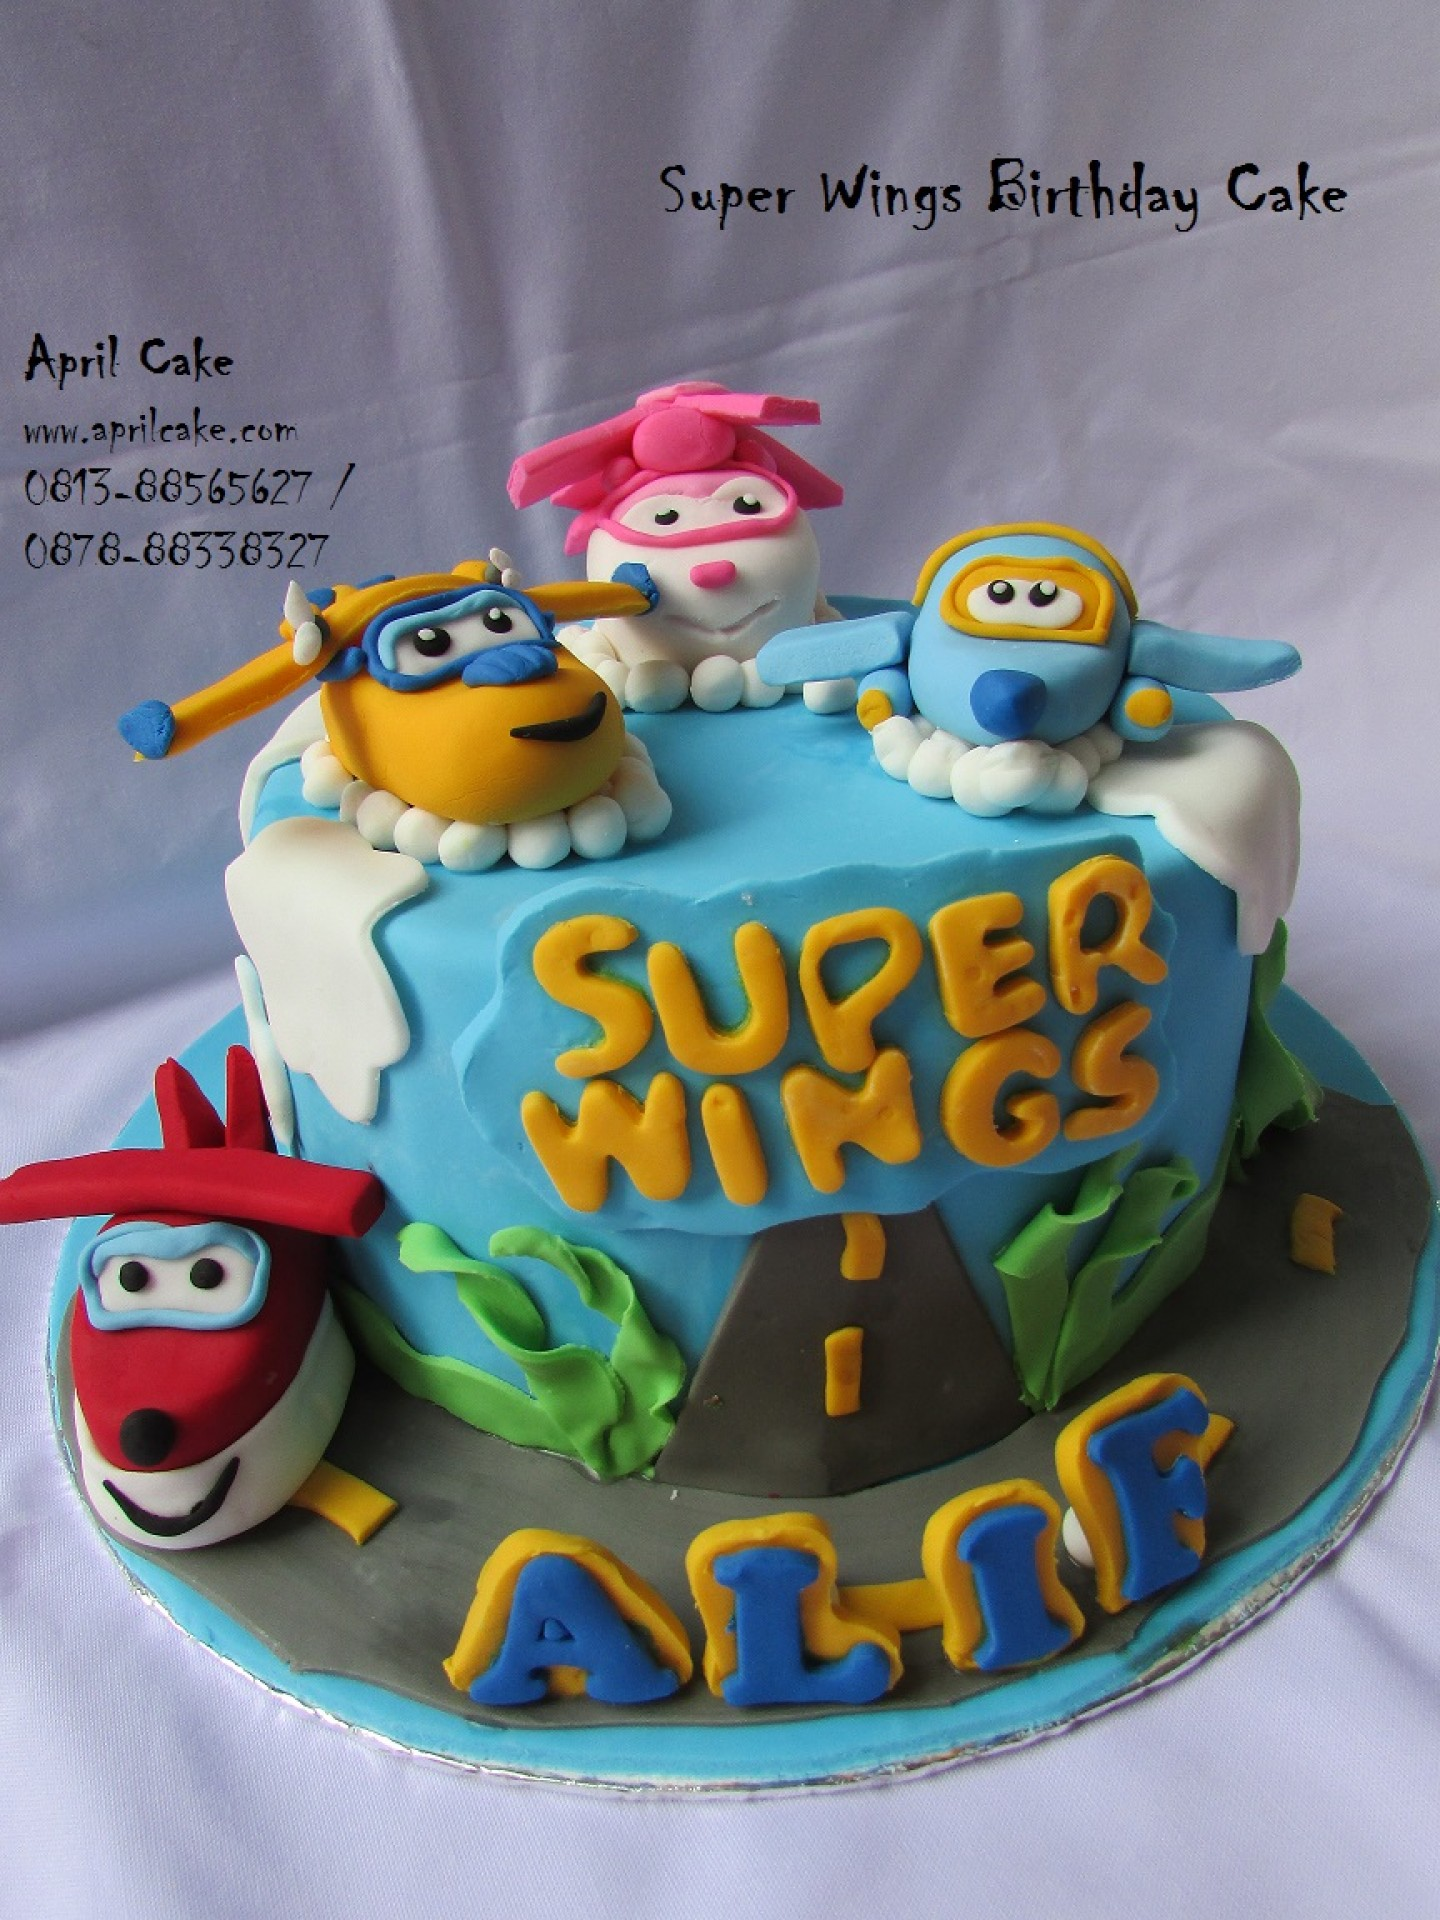 Super Wings Cake April Cake